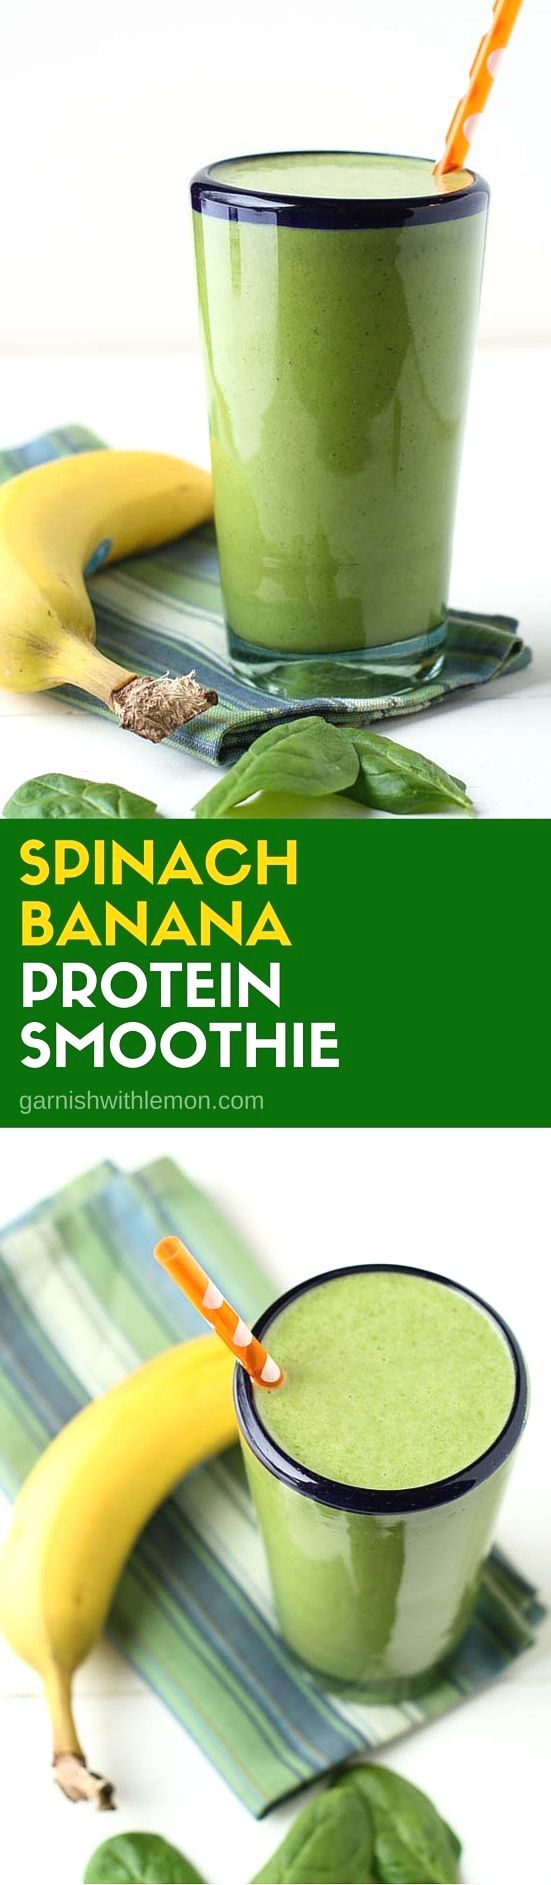 Start your day on the right foot with a healthy, filling breakfast. This Spinach…